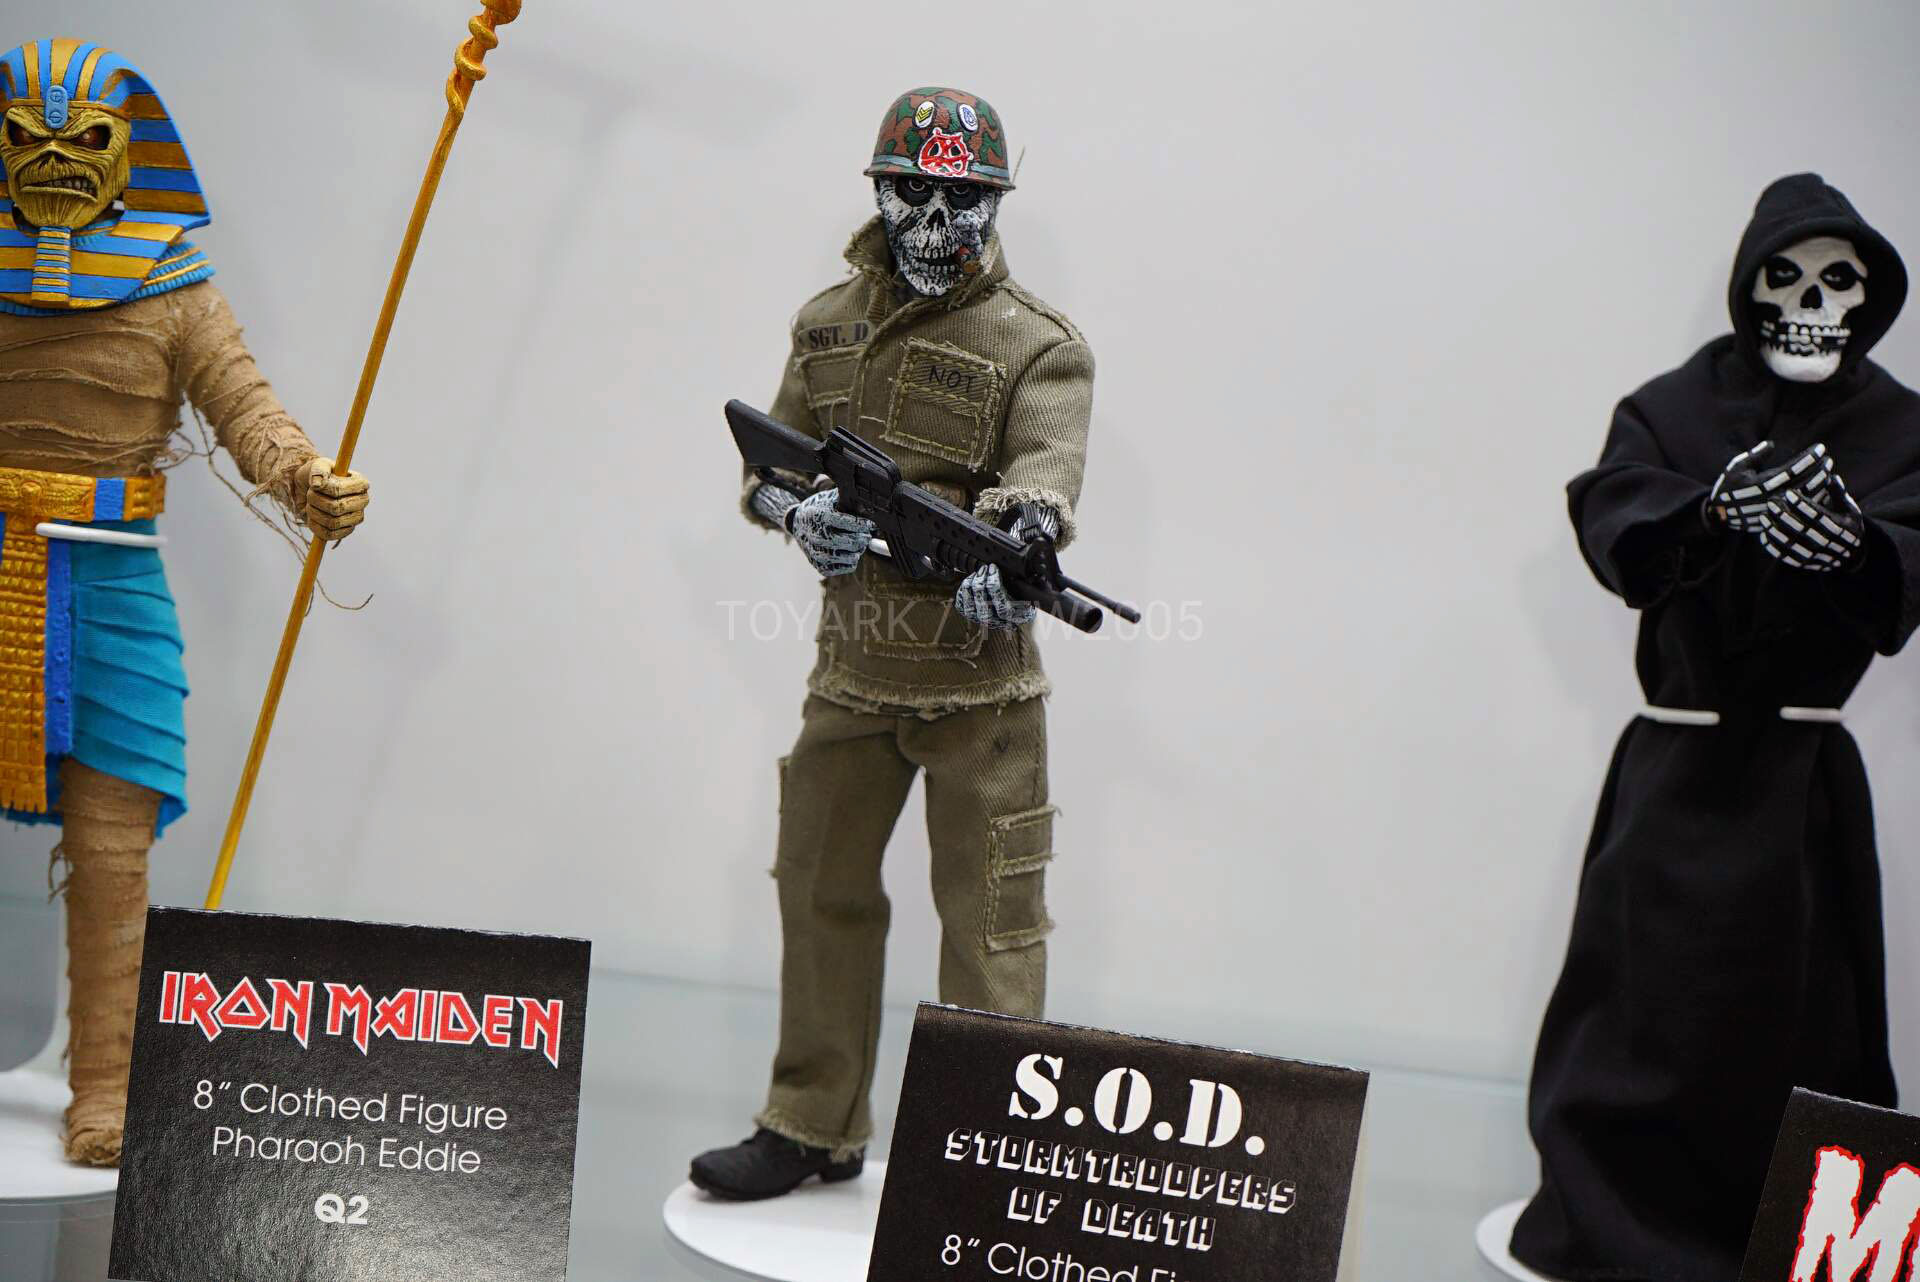 Toy-Fair-2020-NECA-Horror-Sci-Fi-014.jpg